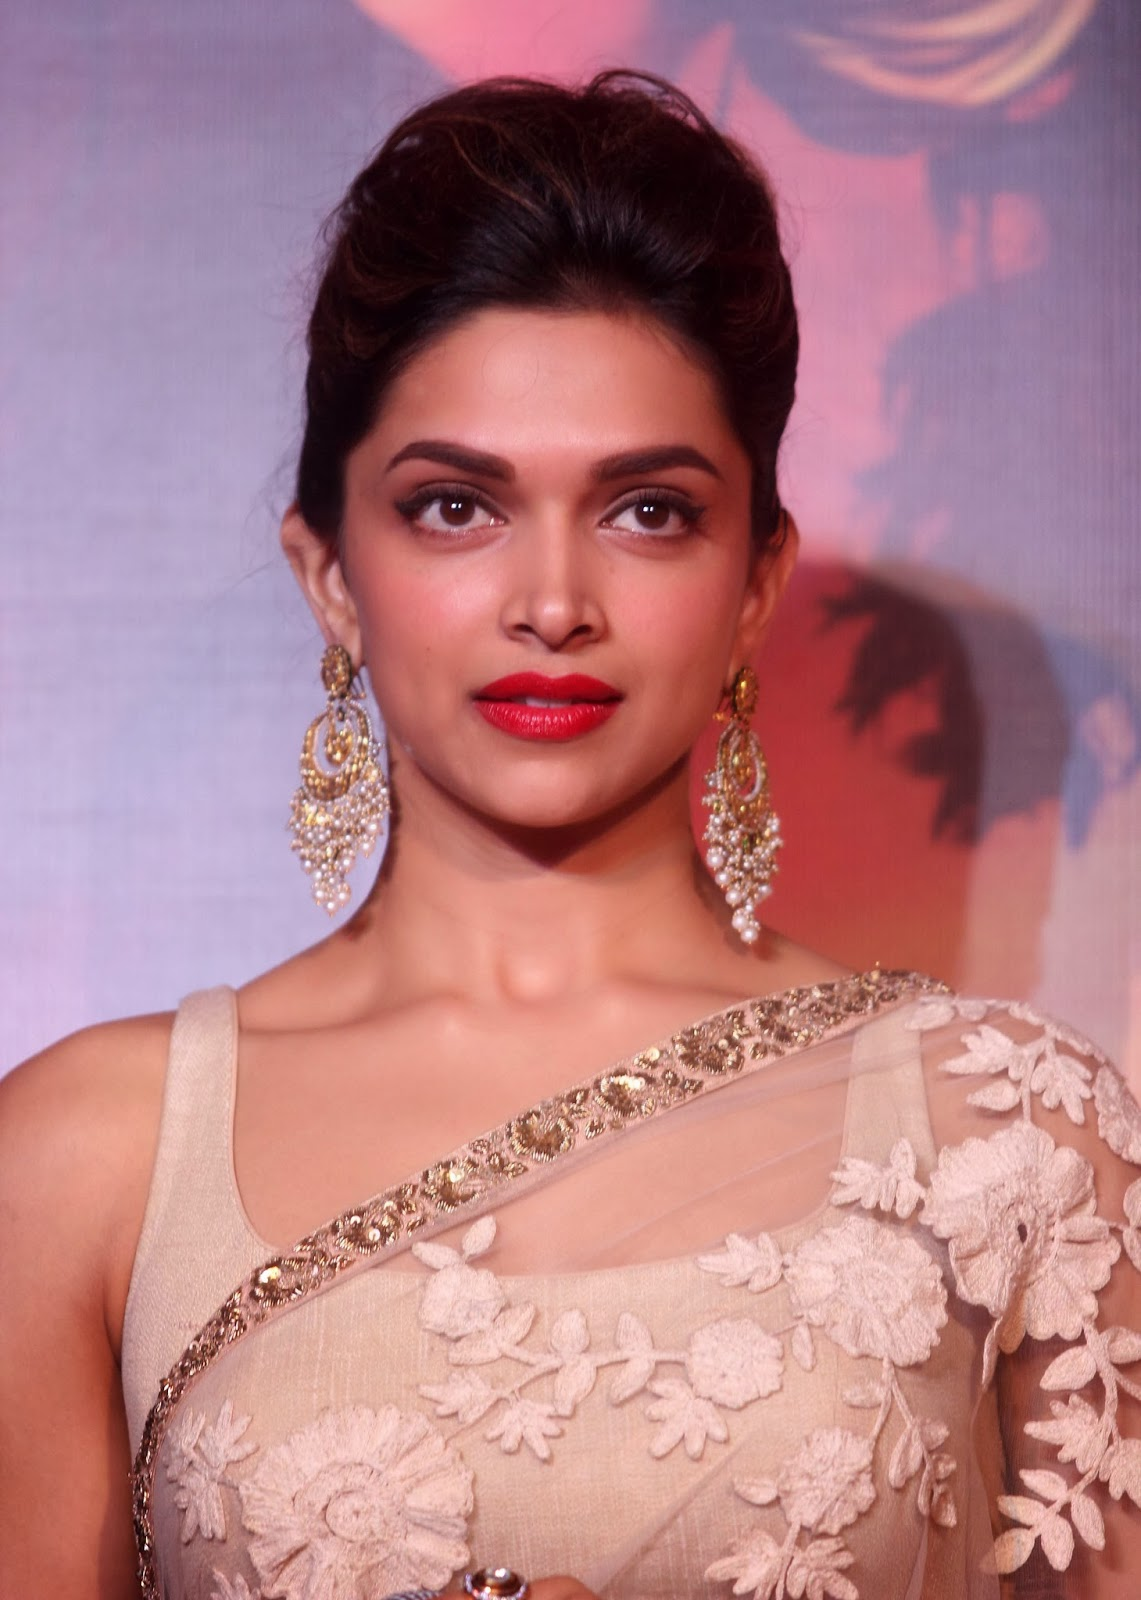 Bollywood Actress Deepika Padukone Hot Smiling Face Closeup Photos